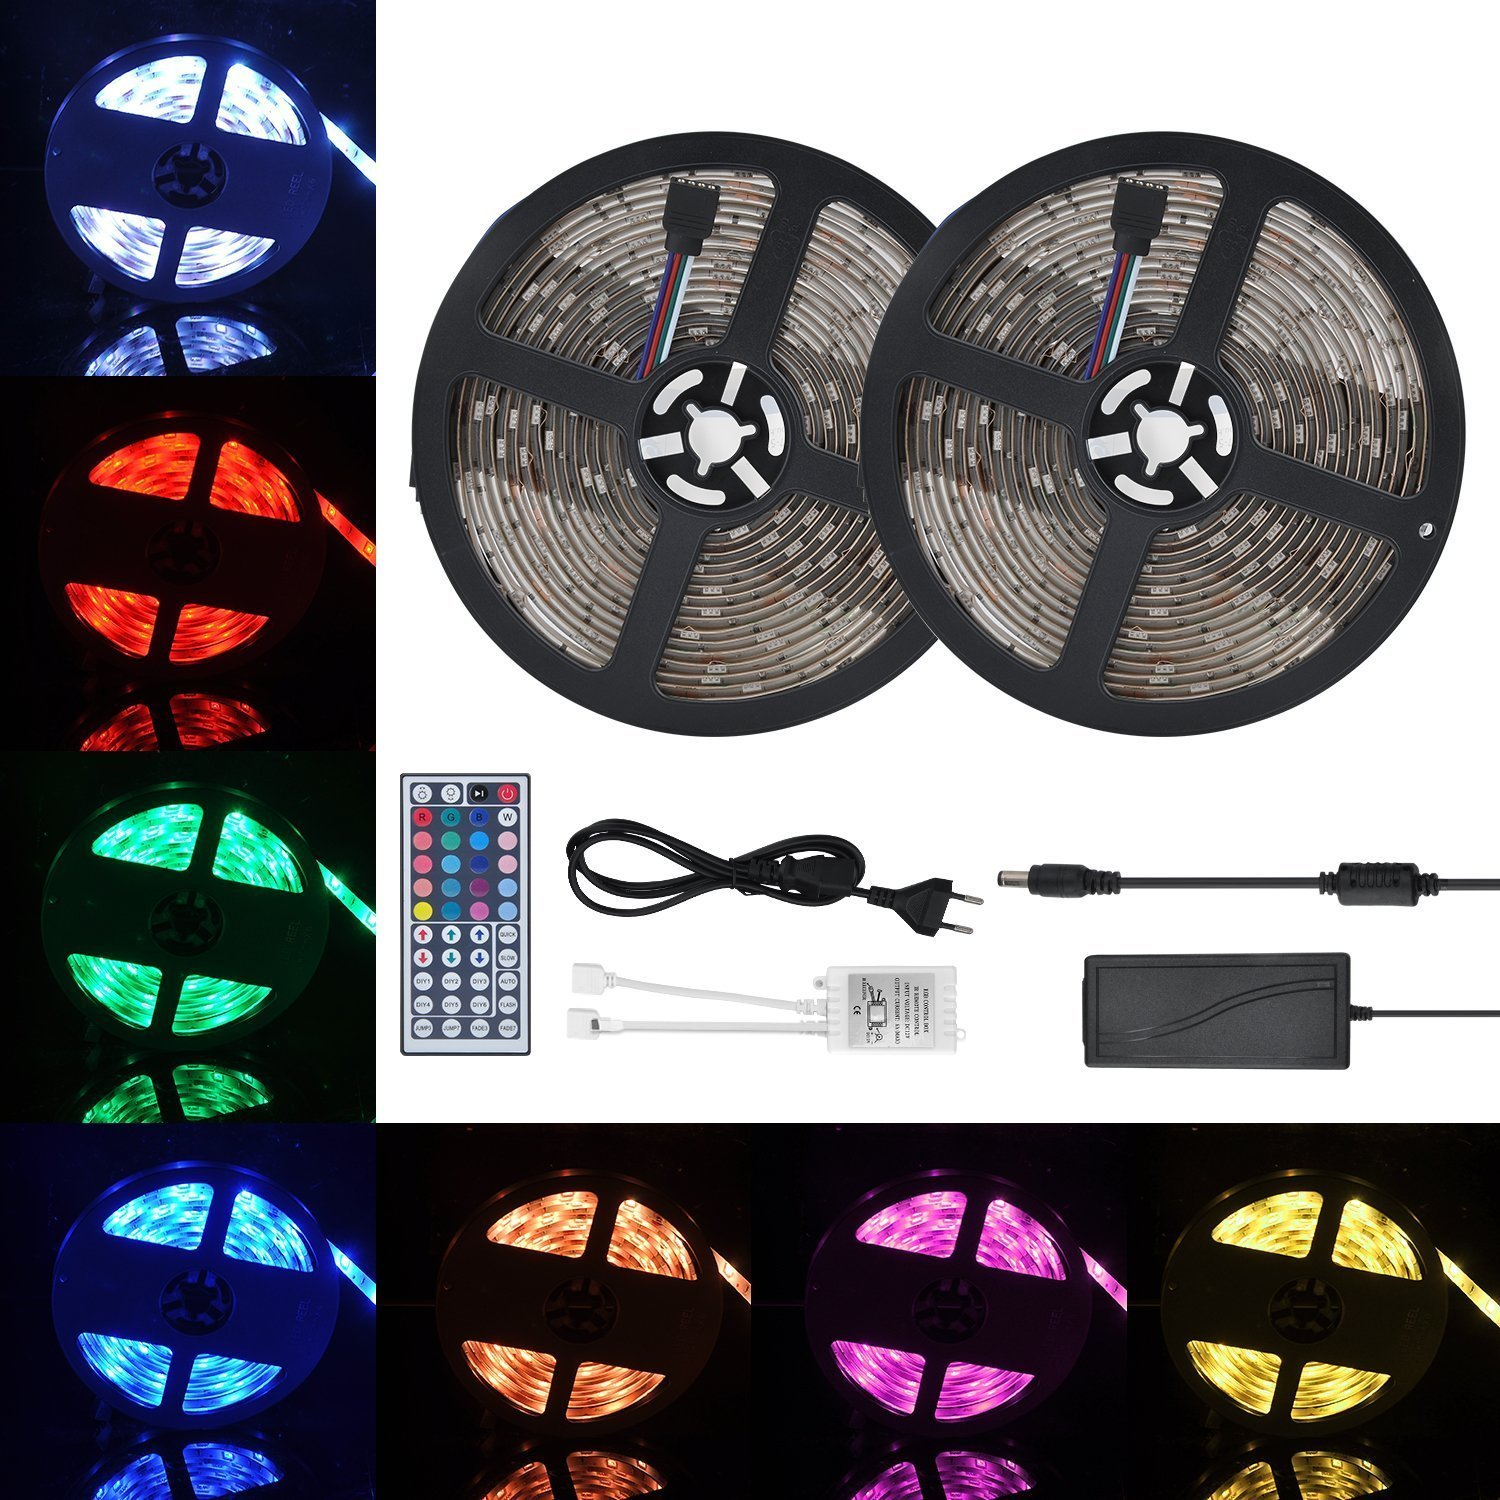 Waterproof LED Strip Lights Kit,MAGIC ROSE LED Flexible Light Strip 32.8Ft/2x5M 5050 300LEDs RGB Strip Lighting with 44Key Remote DC 12V Power Supply for DIY/Christmas/Party/Decoration/Ceiling(2 Pack)